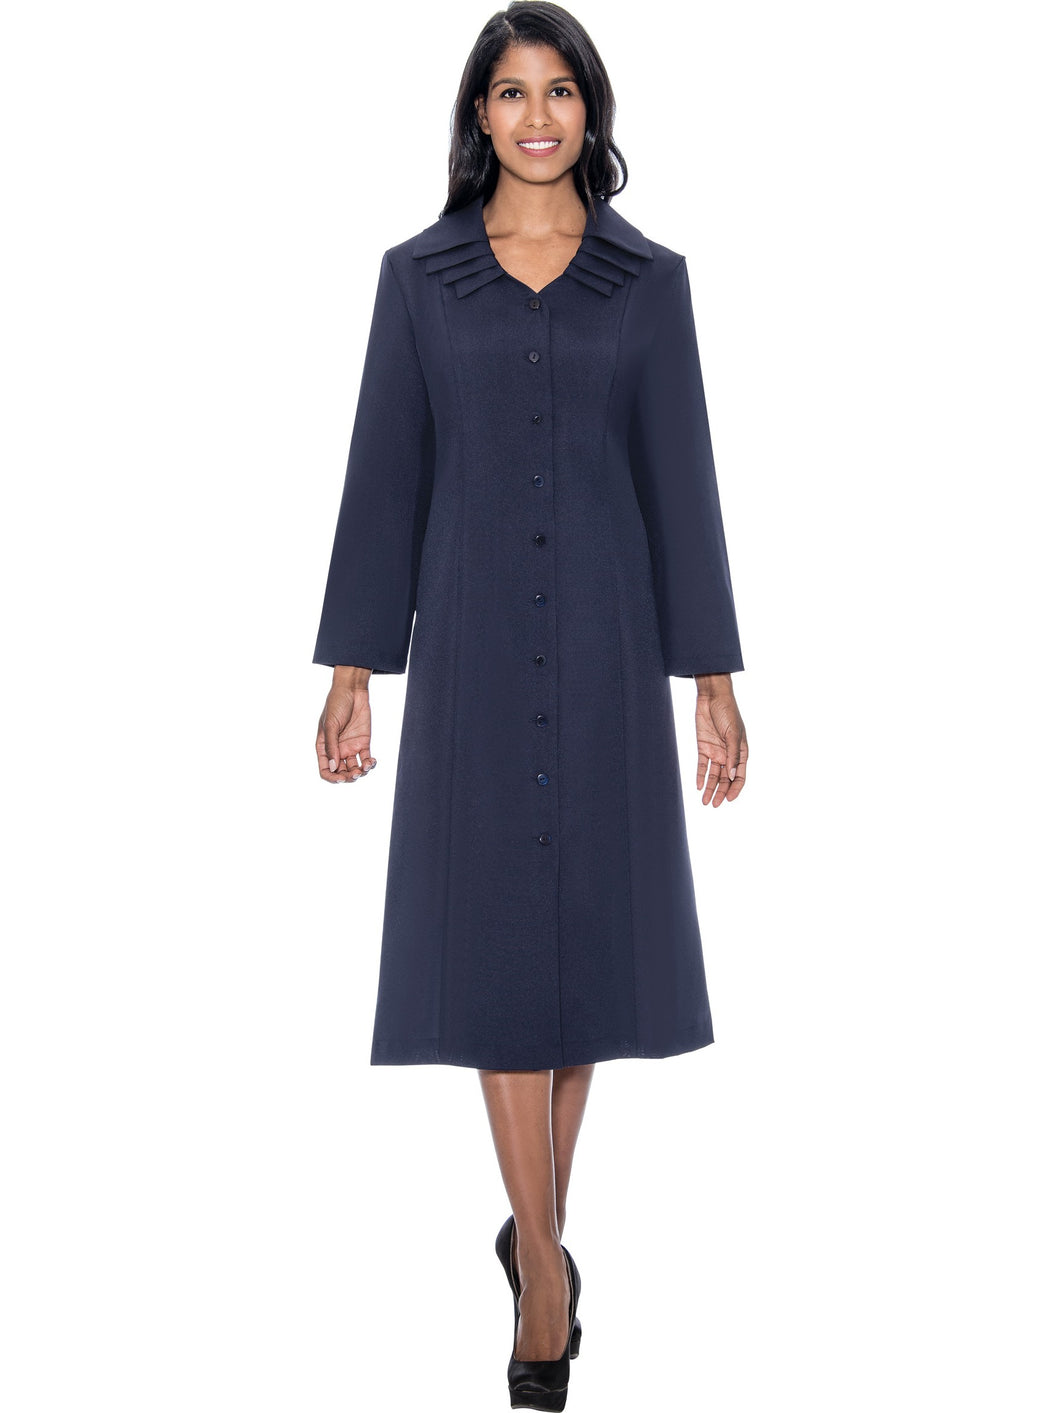 G11721 Navy Usher Dress, church, choir, group uniform